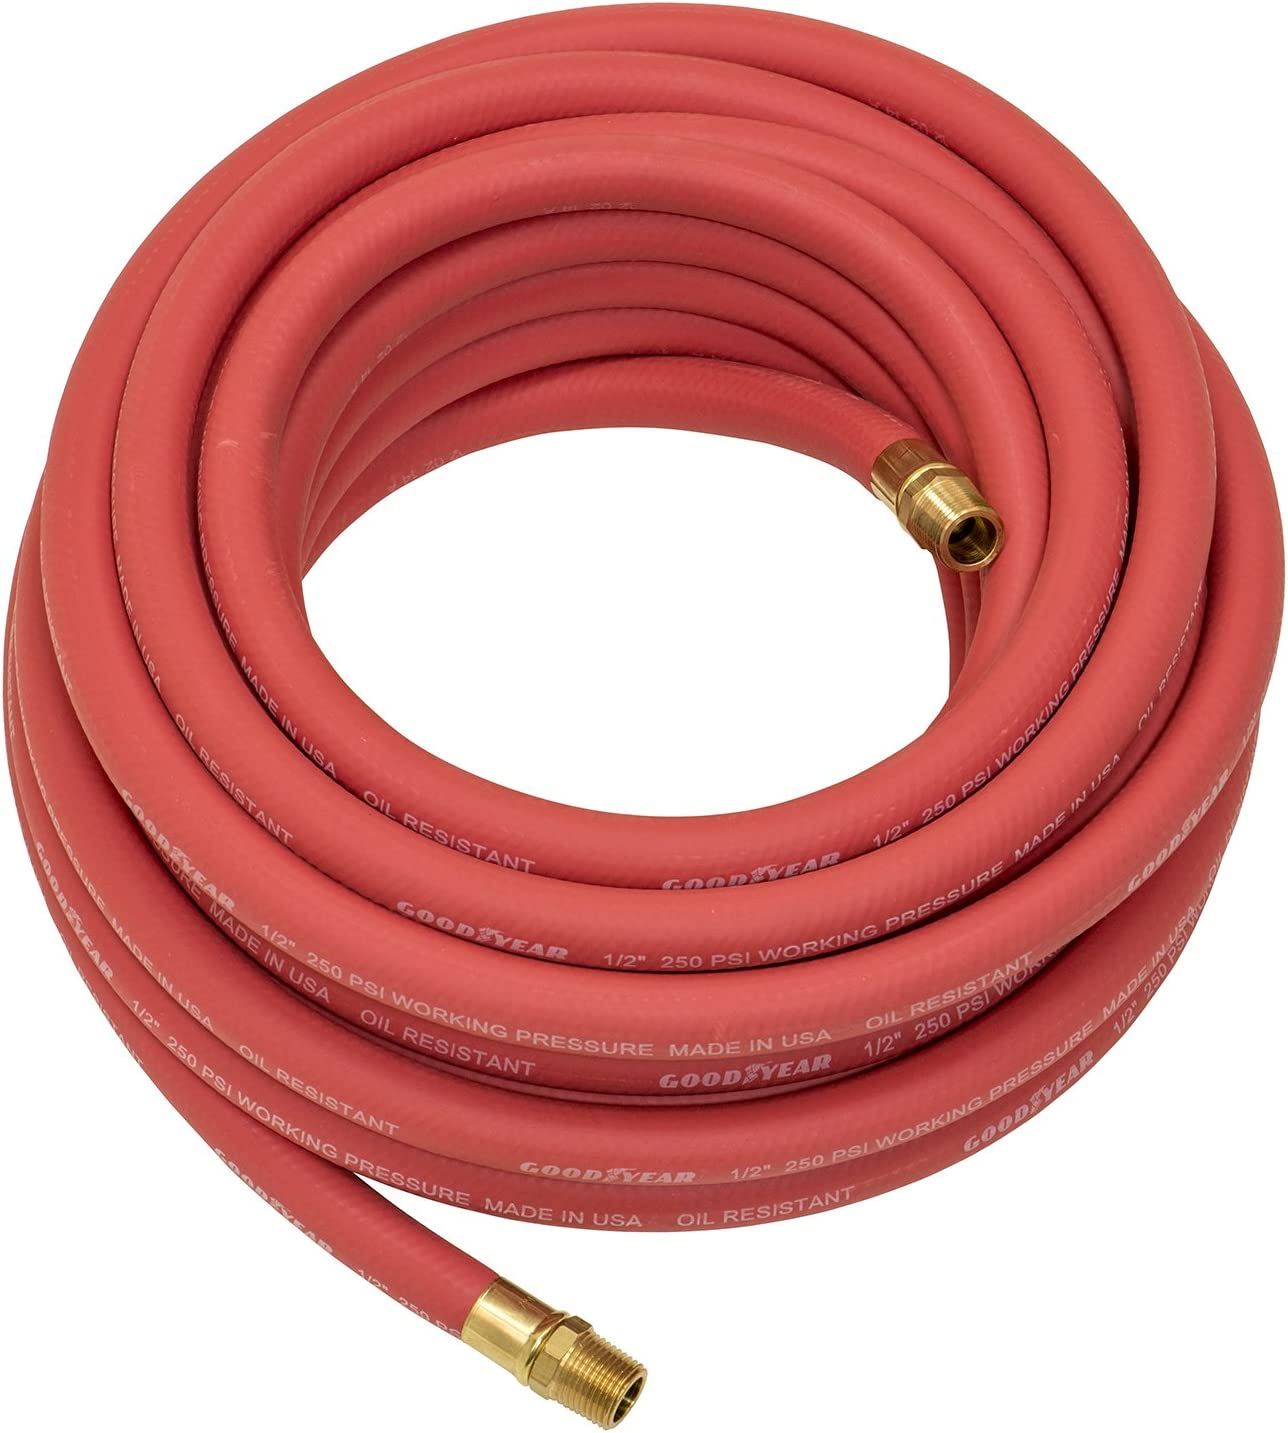 """Good Year 50/' x 3//8/"""" 250 PSI Rubber Air Compressor Hose 12674 Goodyear USA Made"""